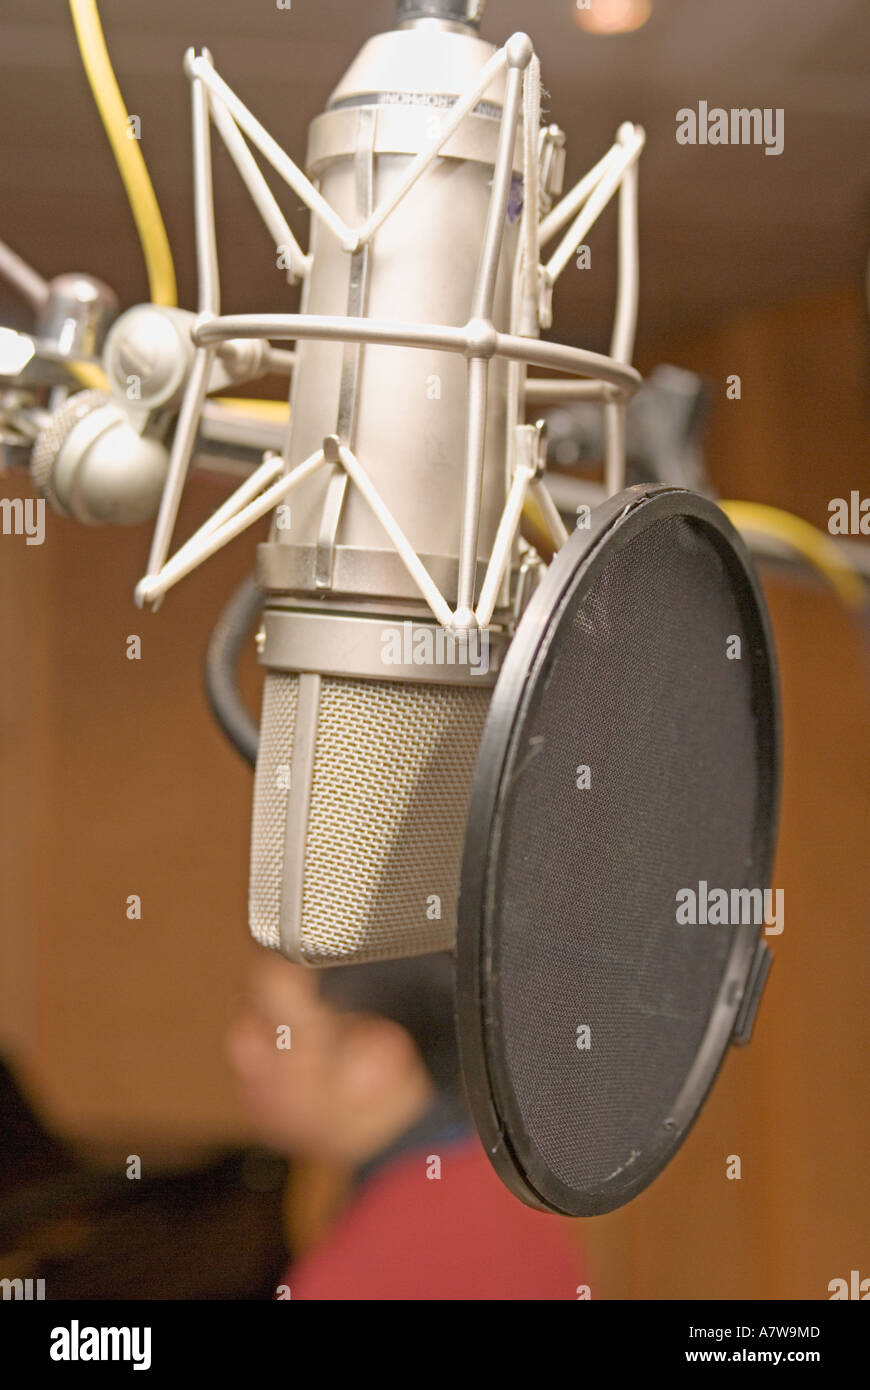 Close up of Newman u87 tube condenser mic microphone in music recording studio - Stock Image